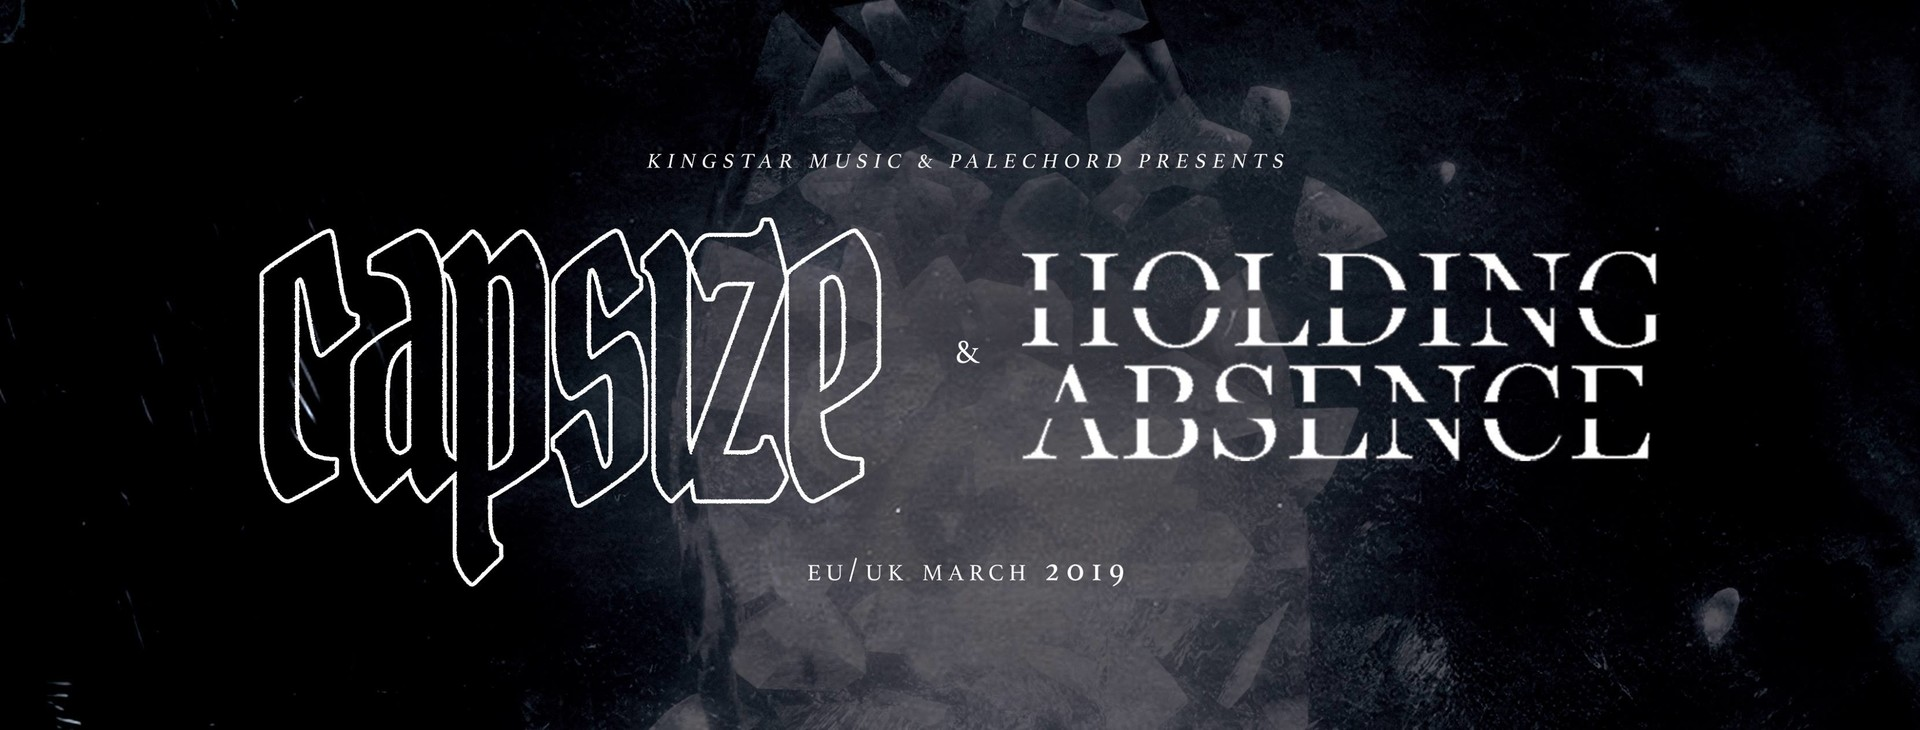 Capsize And Holding Absence Cancel Upcoming Europe Tour Amidst Allegations Of Sexual Misconduct